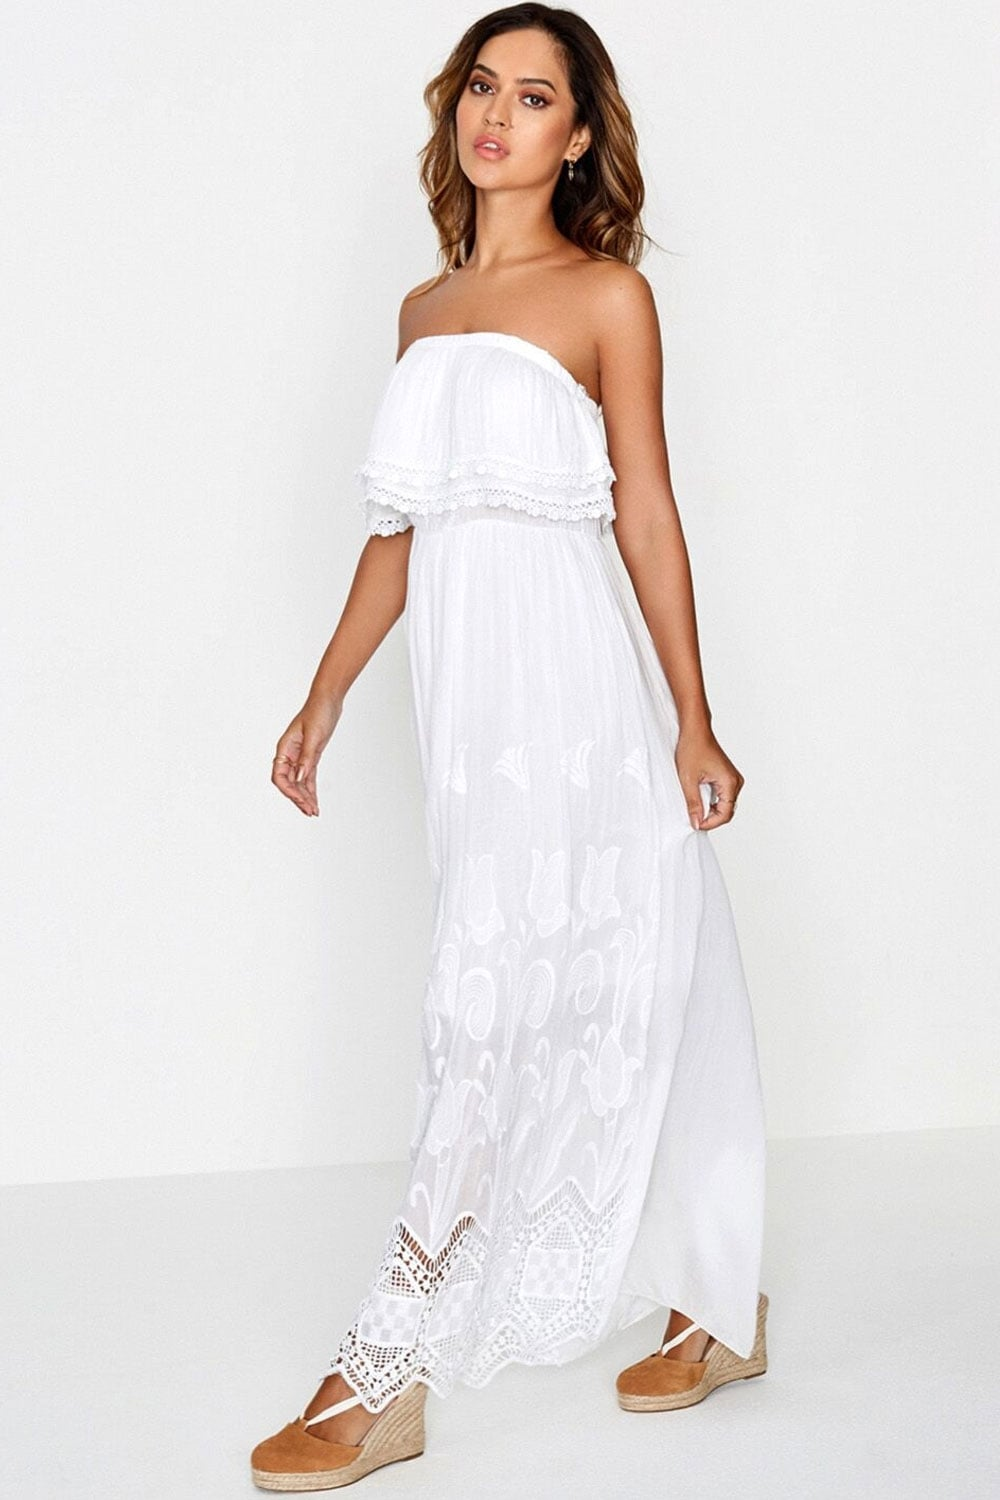 Buy the latest women's White dresses online at low price. StyleWe offers cheap dresses in red, black, white and more for different occasions. Maxi Dresses Midi Dresses Shop by Style Boho Dresses Elegant Dresses.